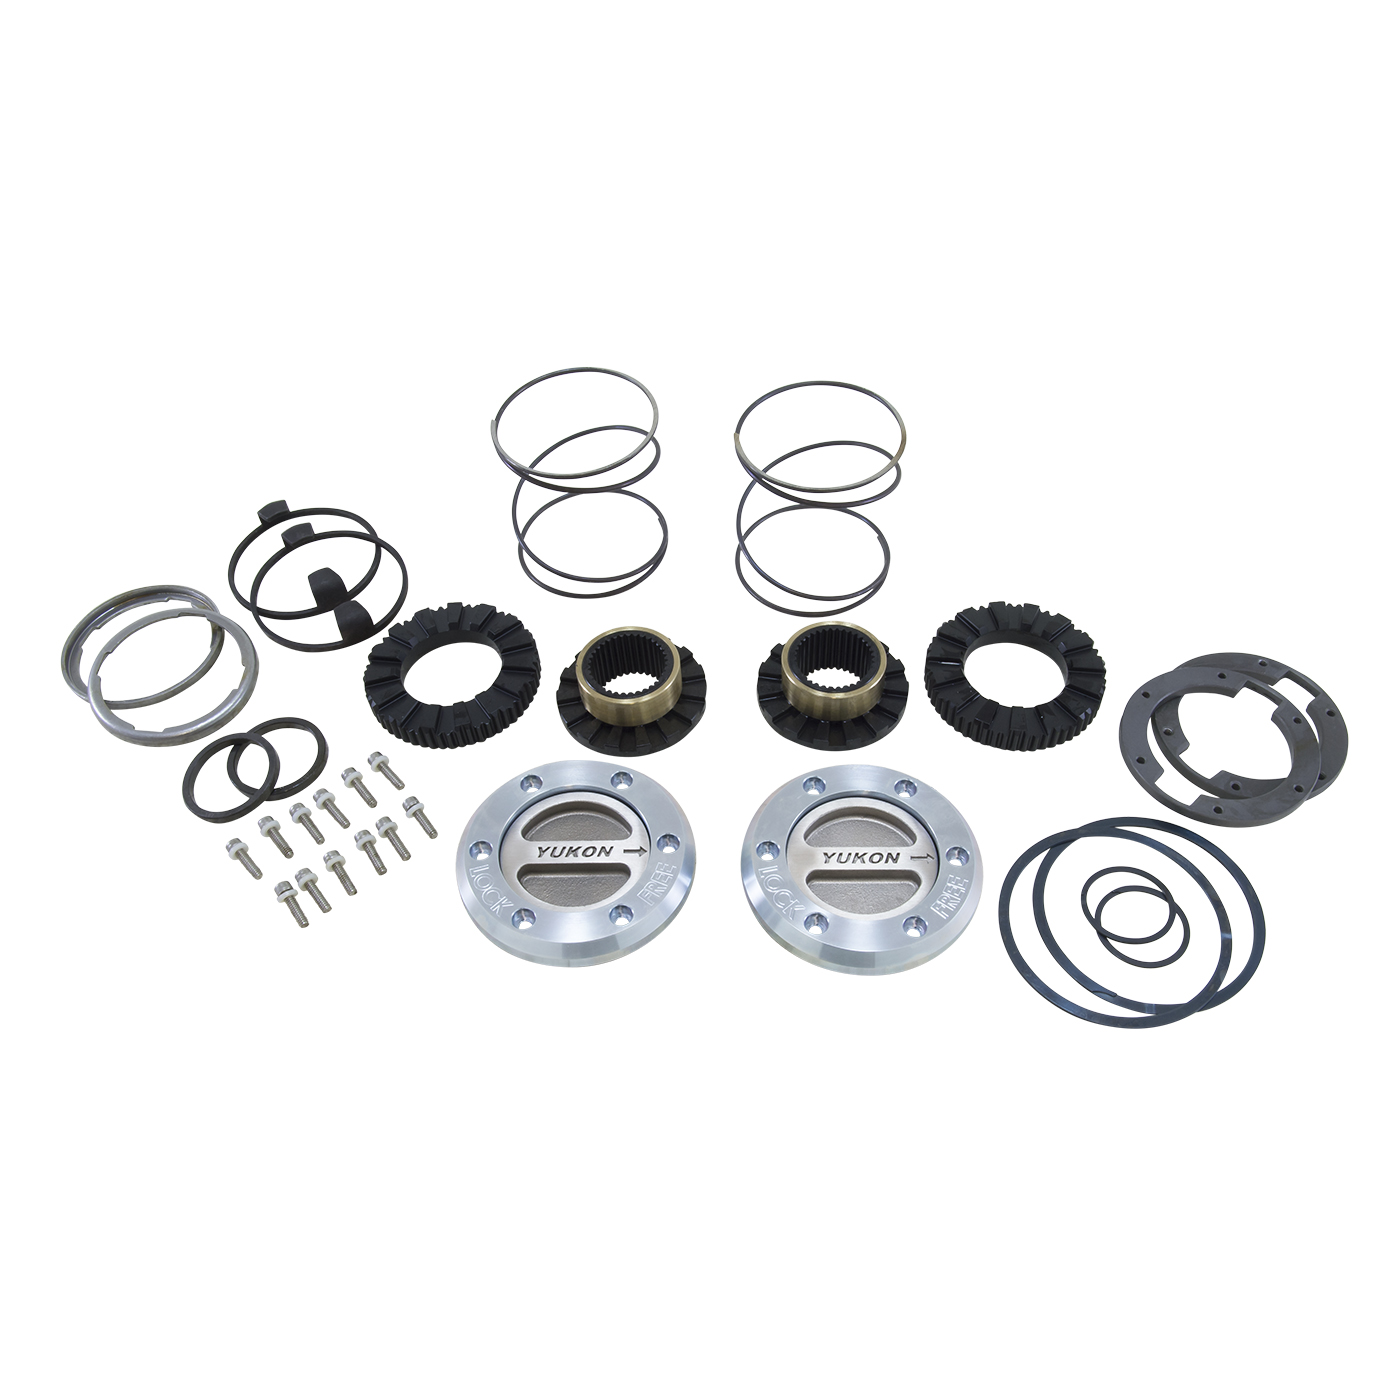 Locking Hub Kit